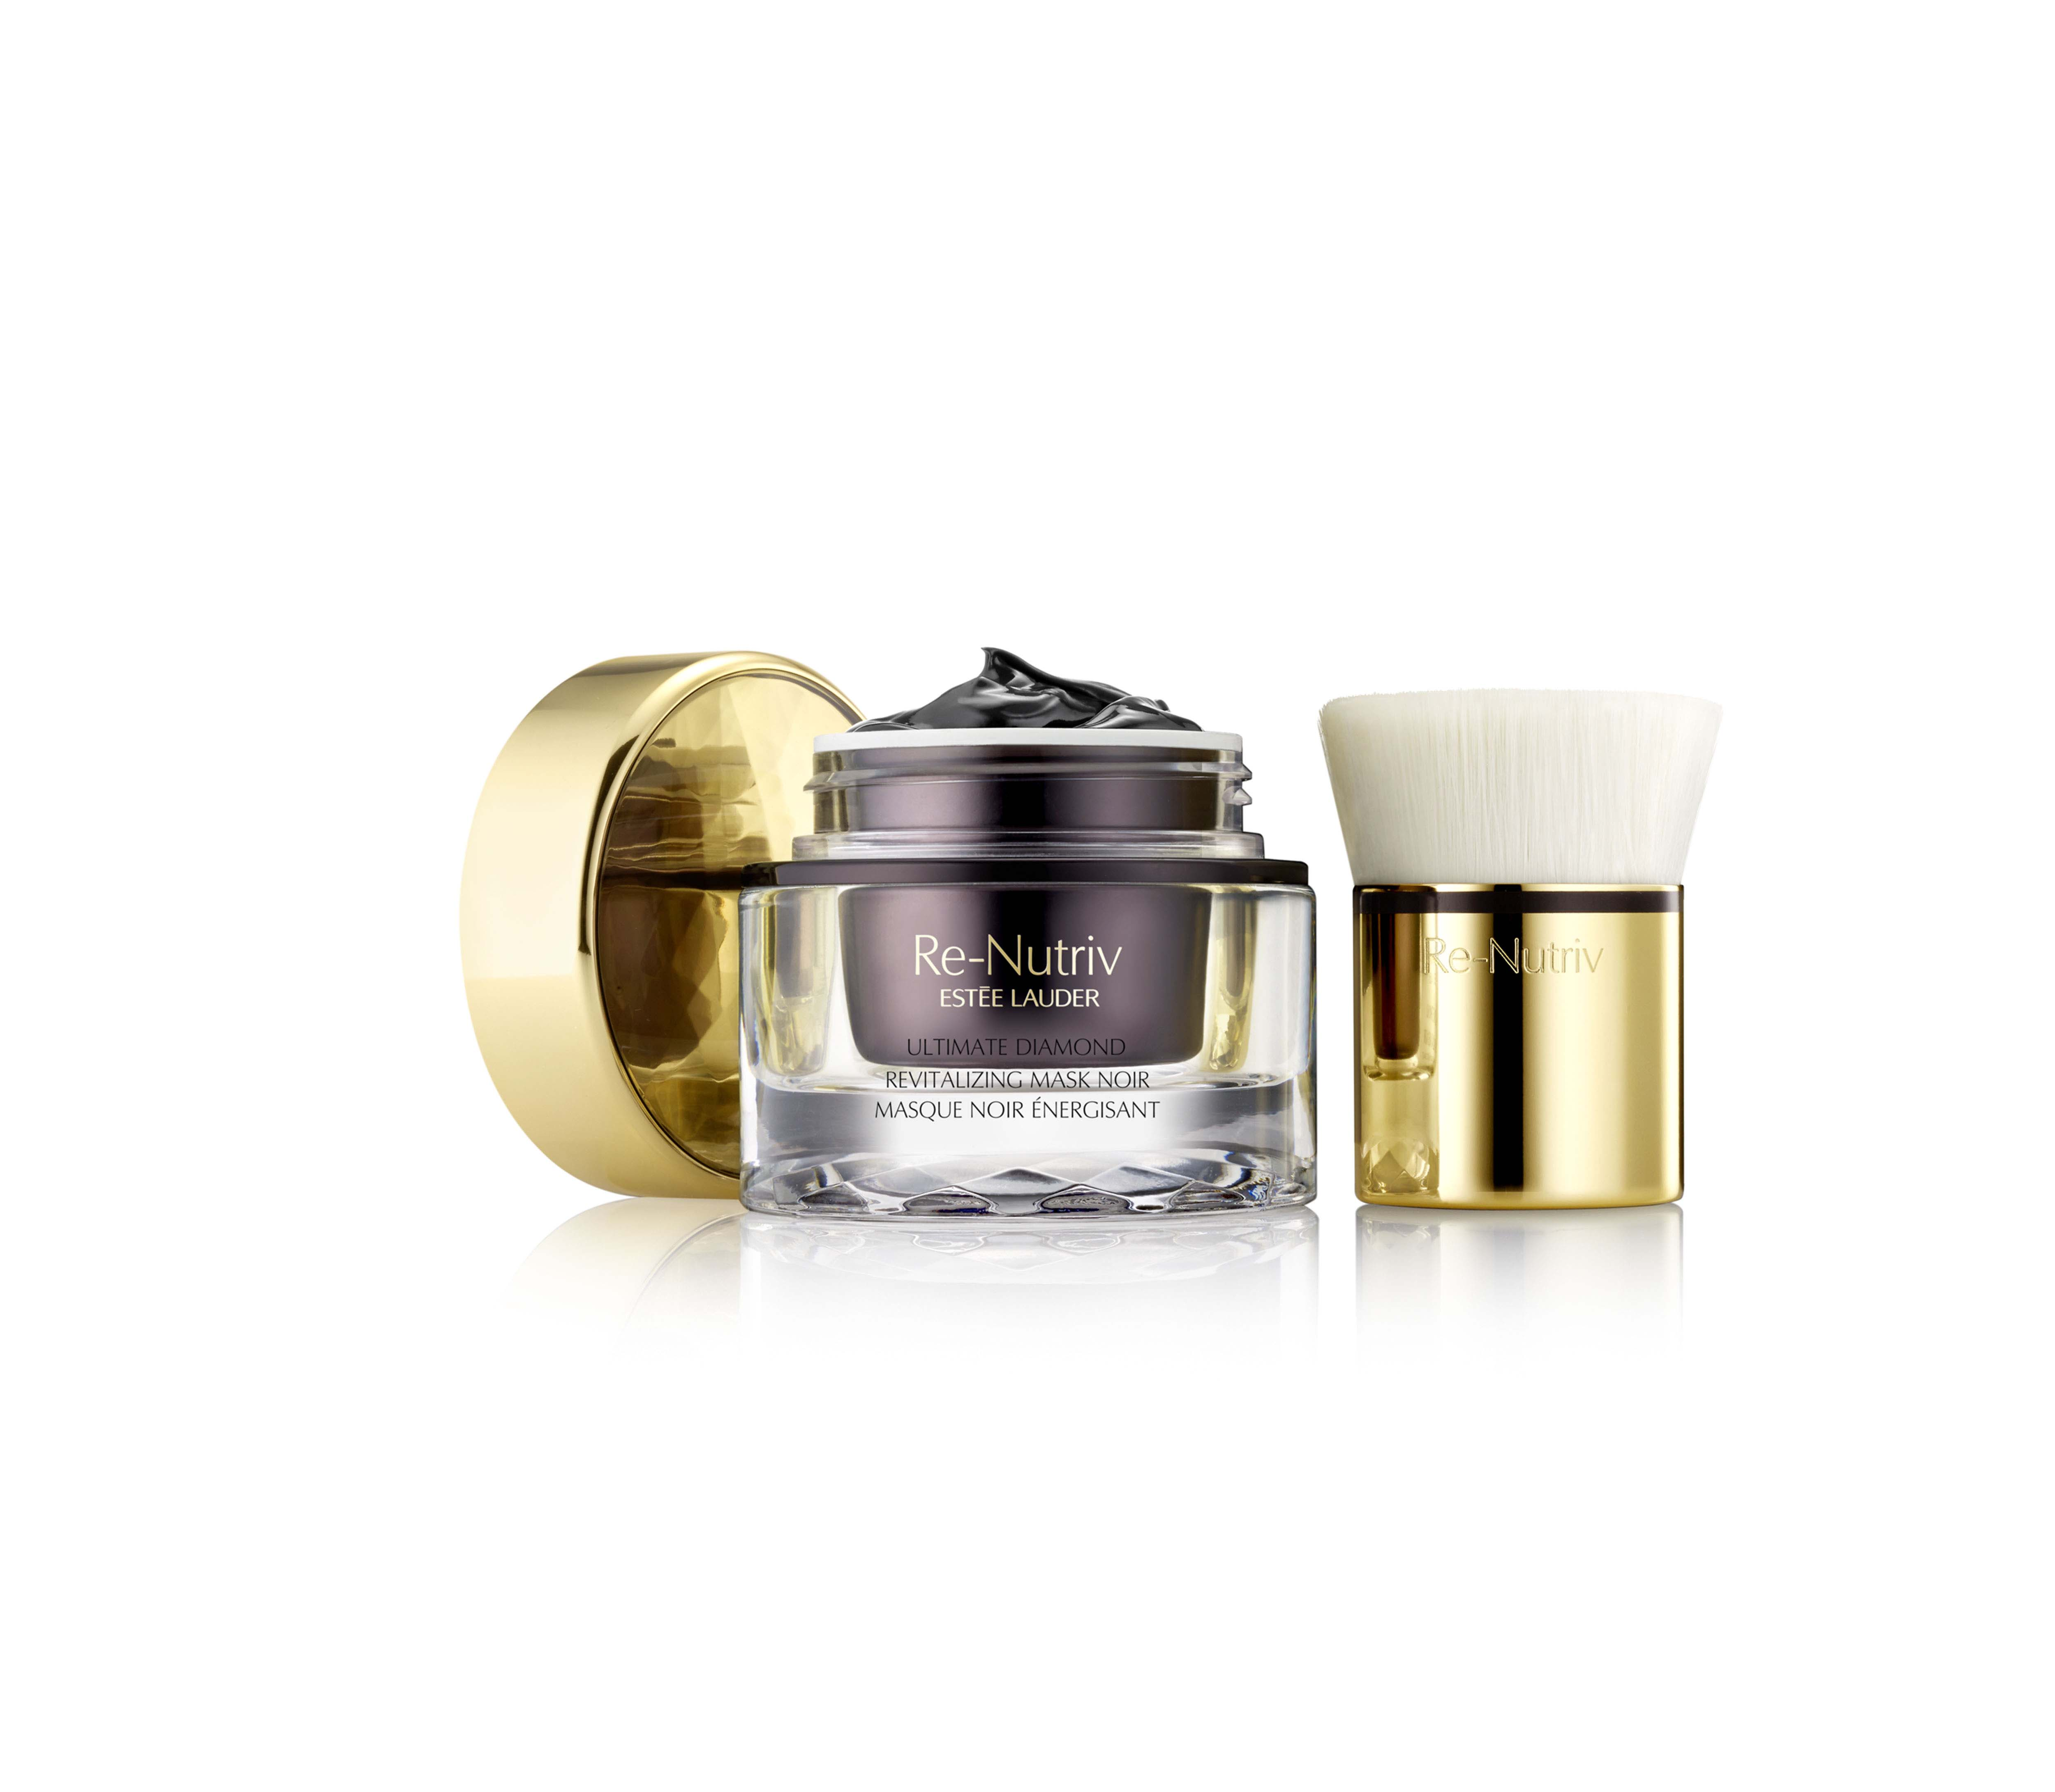 Etee Lauder_Re_Nutriv_Ultimate_Diamond_Mask_Noir_Mask_+_Brush_Product_Shot_low